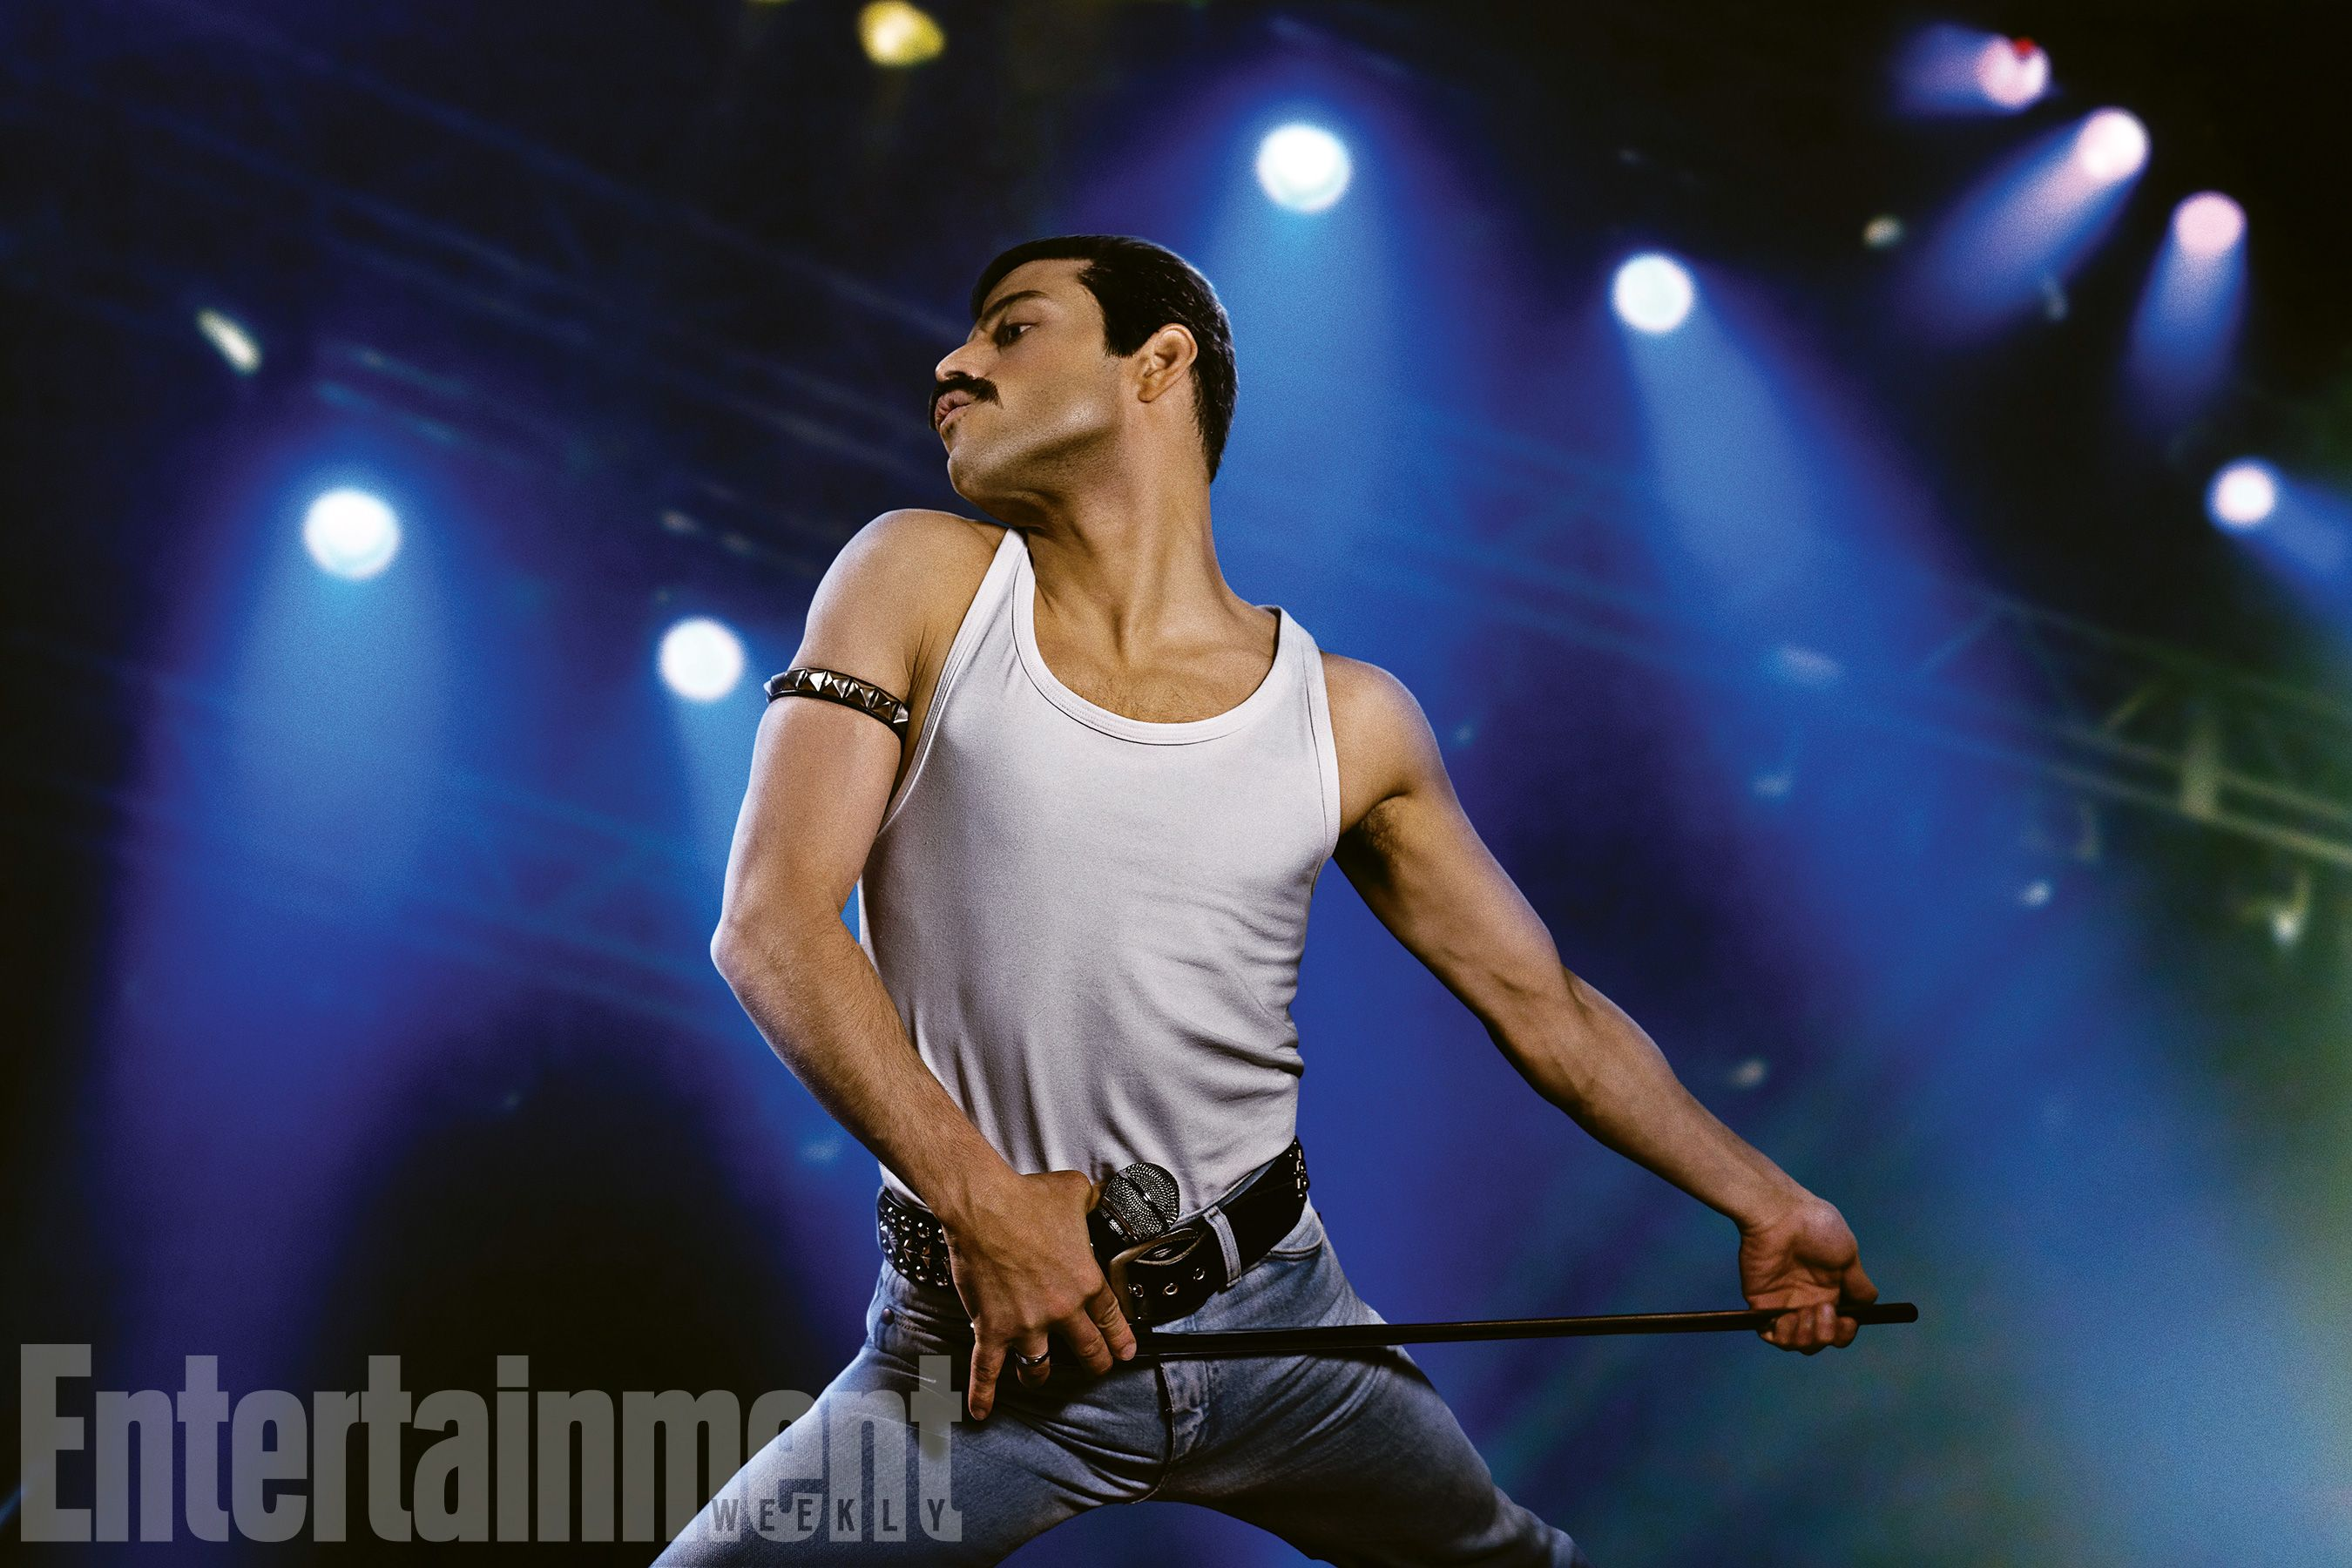 BOHEMIAN RHAPSODY starring Rami Malek as Freddie Mercury | In theaters December 25, 2018